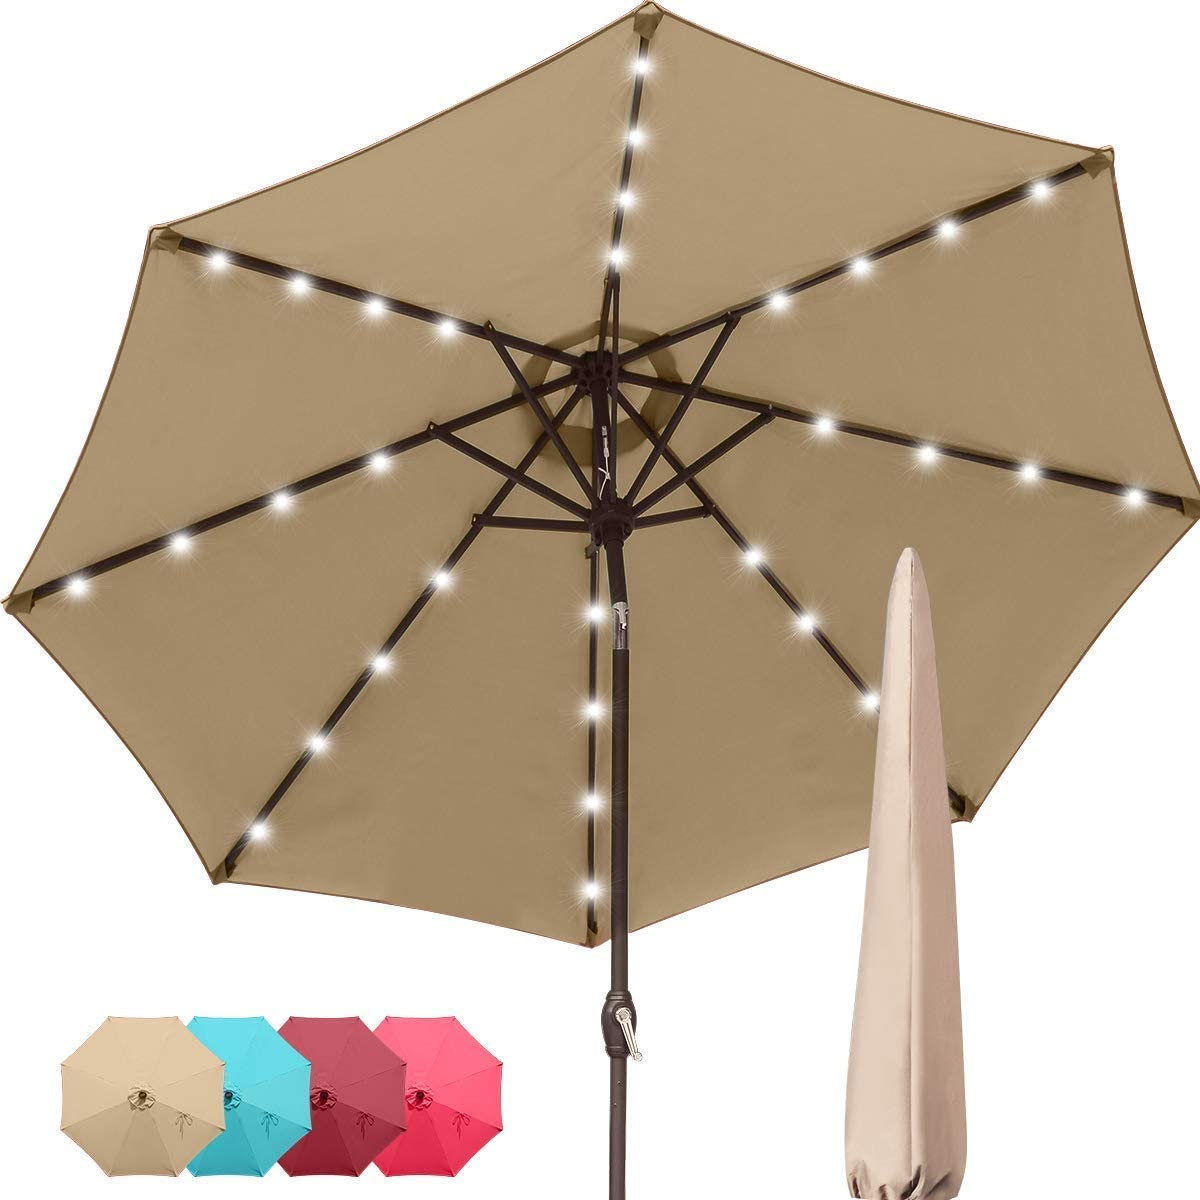 Quictent 9Ft Patio Umbrella 32 Solar LED Lighted Outdoor Garden Table Canopy Market Umbrella Pool Backyard with Ventilation 3 Years Non-Fading Top 8 Ribs 240G Yarn-Dyed Fabric (Tan)